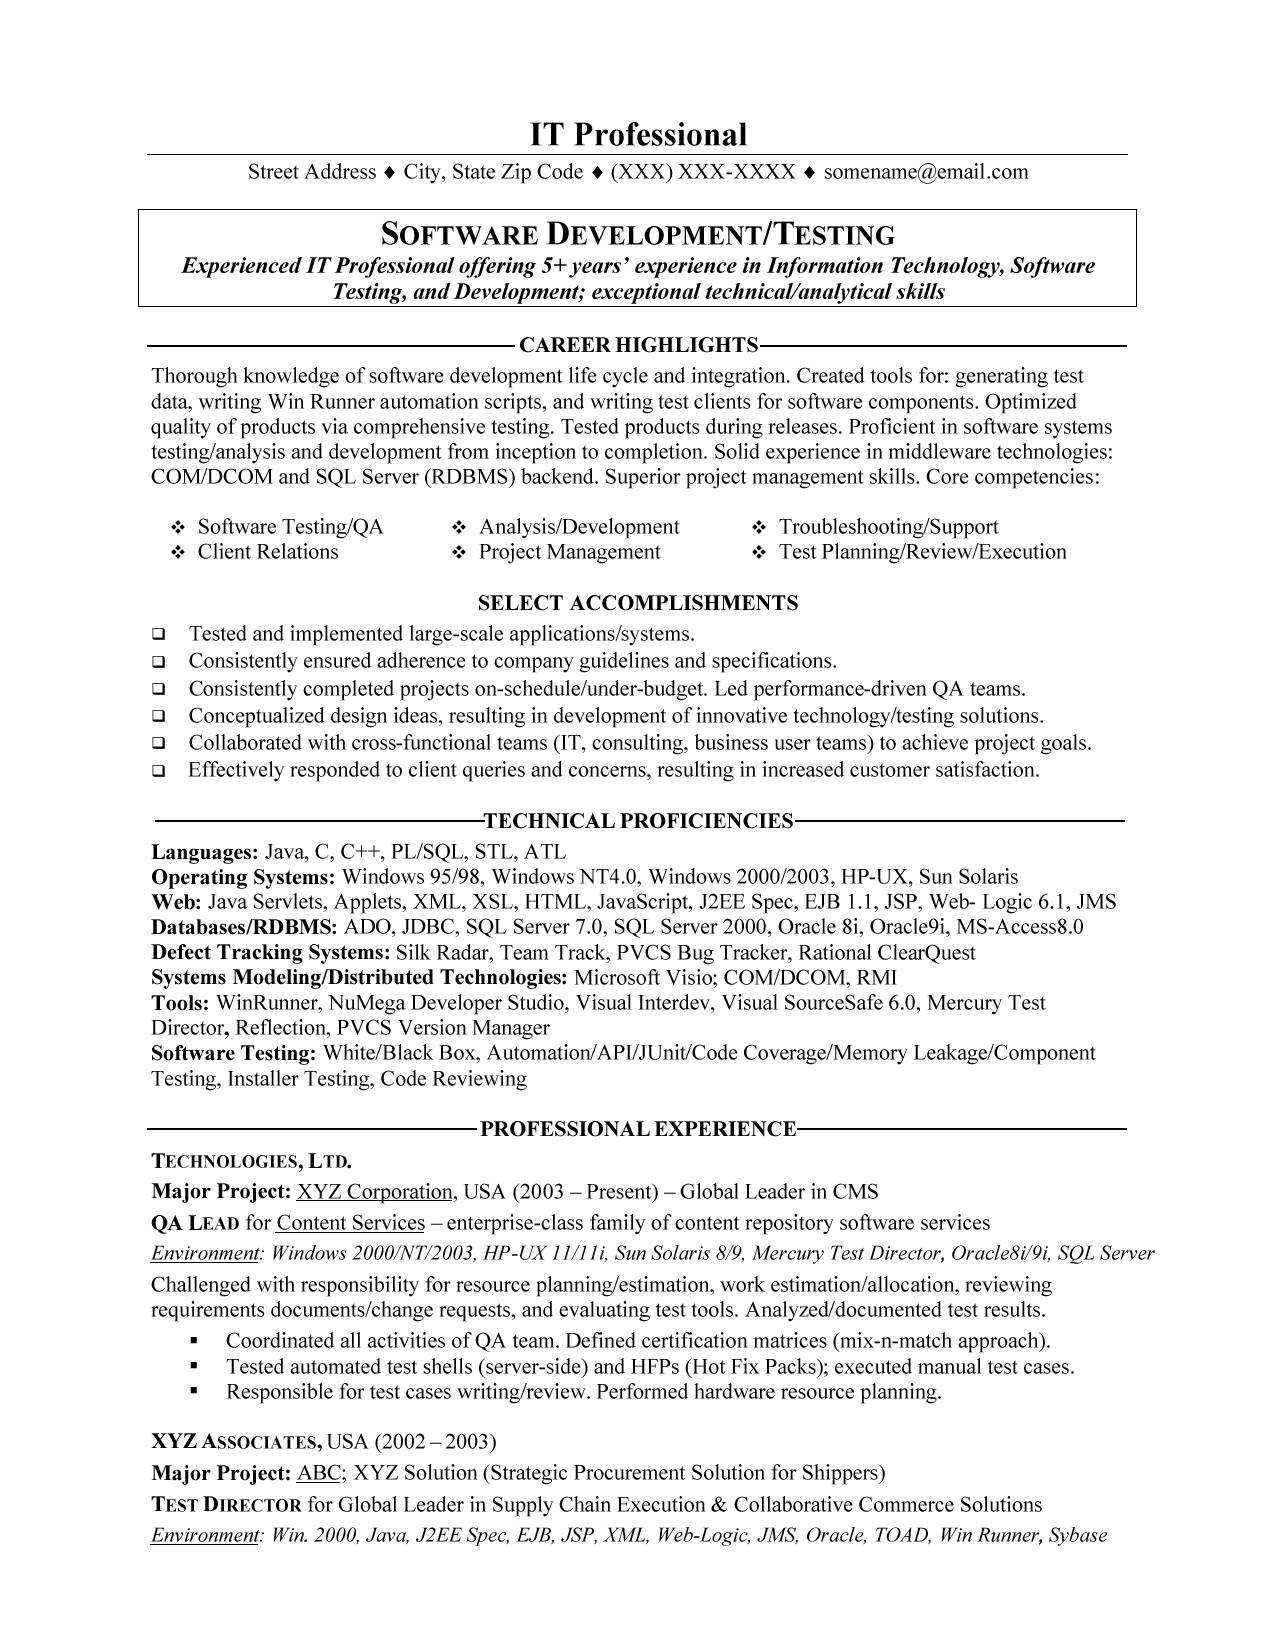 professional resume writing service bay area